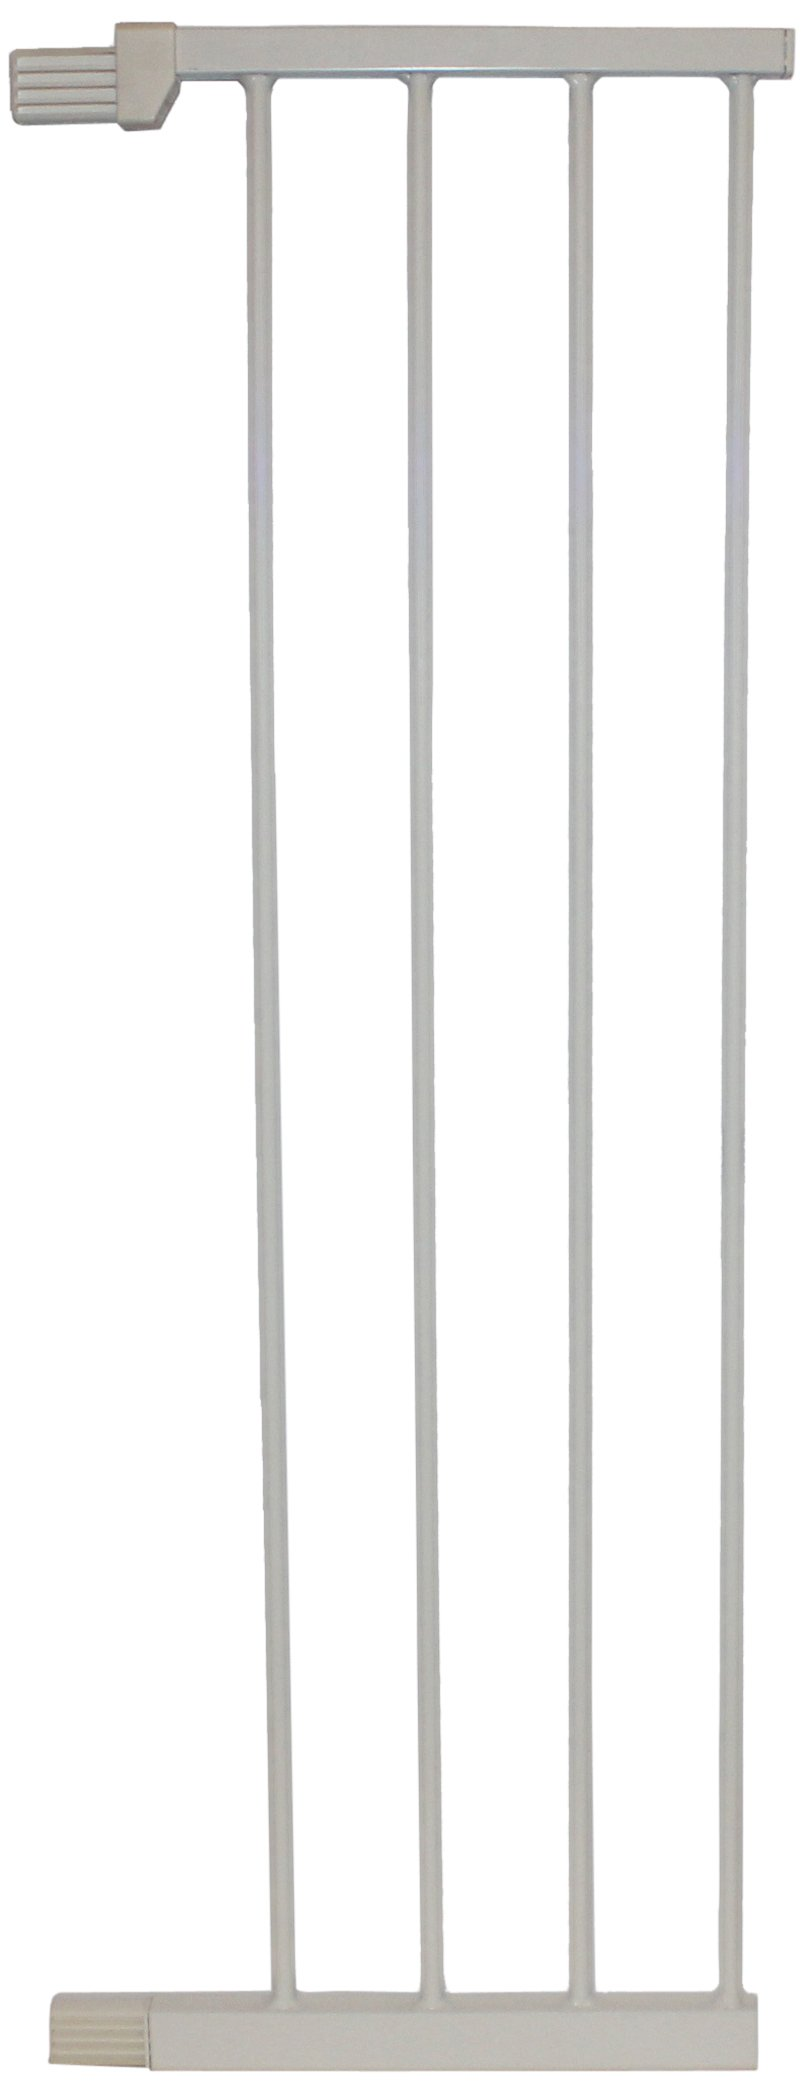 Cardinal Gates Extension for Extra Tall Premium Pressure Gate, White, Large